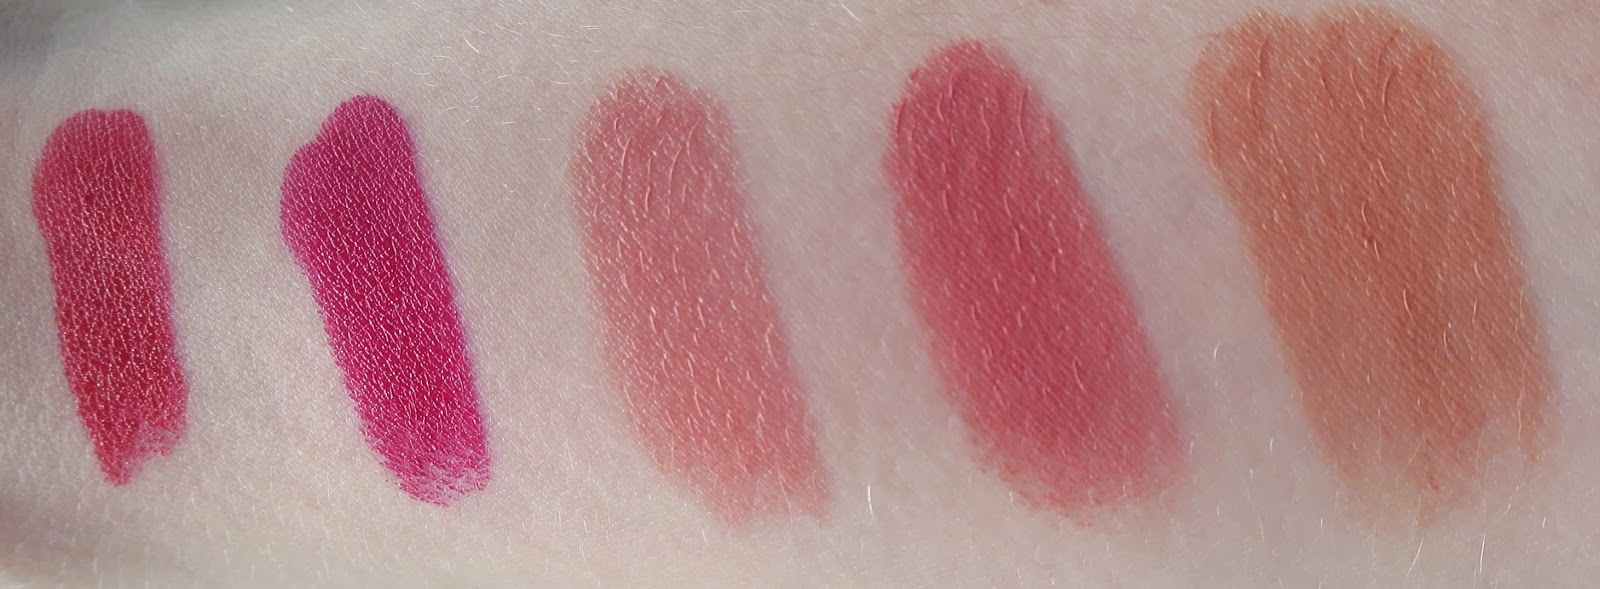 a picture of Rimmel Moisture Renew Lipsticks (arm swatch) ; Red Alert, As You Want Victoria, Let's Get Naked, Nude Delight, Coral Britannia